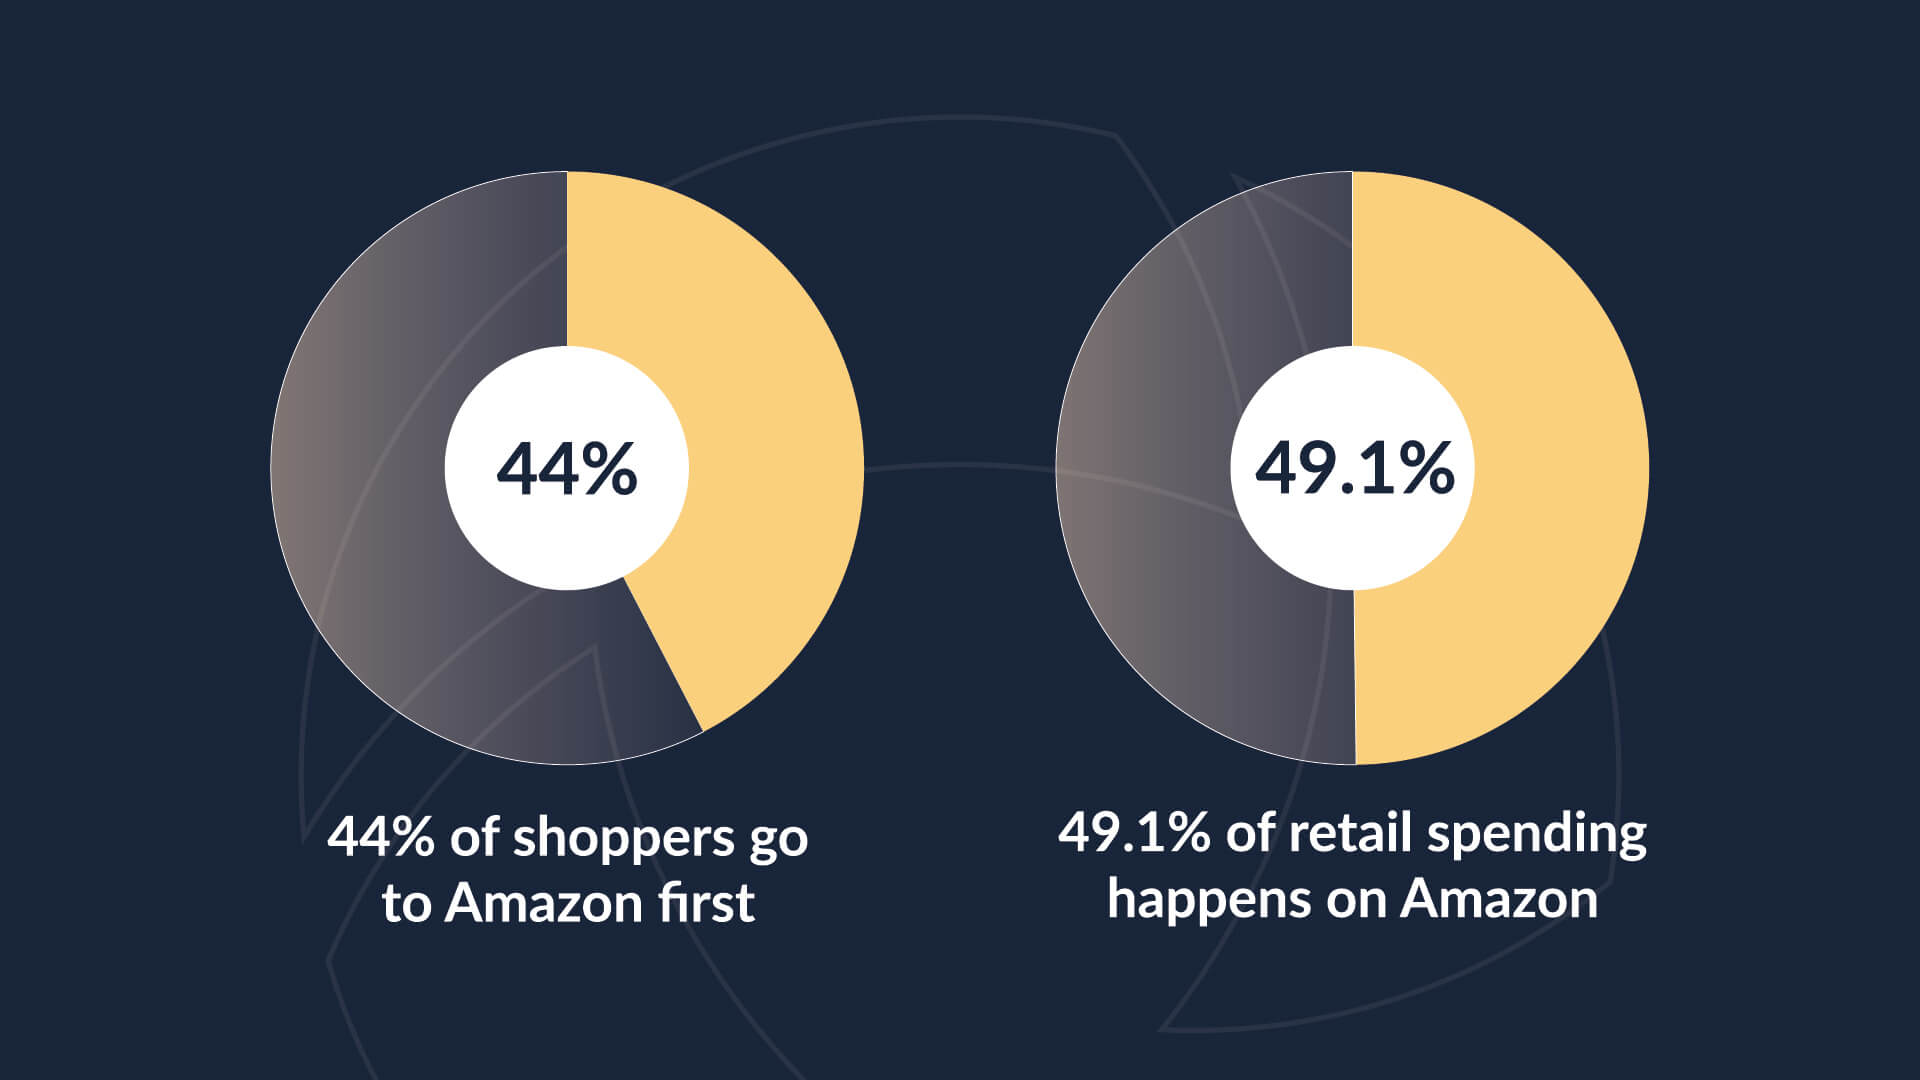 Pie charts revealing that 44% of shoppers visit Amazon first before searching for products elsewhere and 49.1% of all retail spending occurs on Amazon.